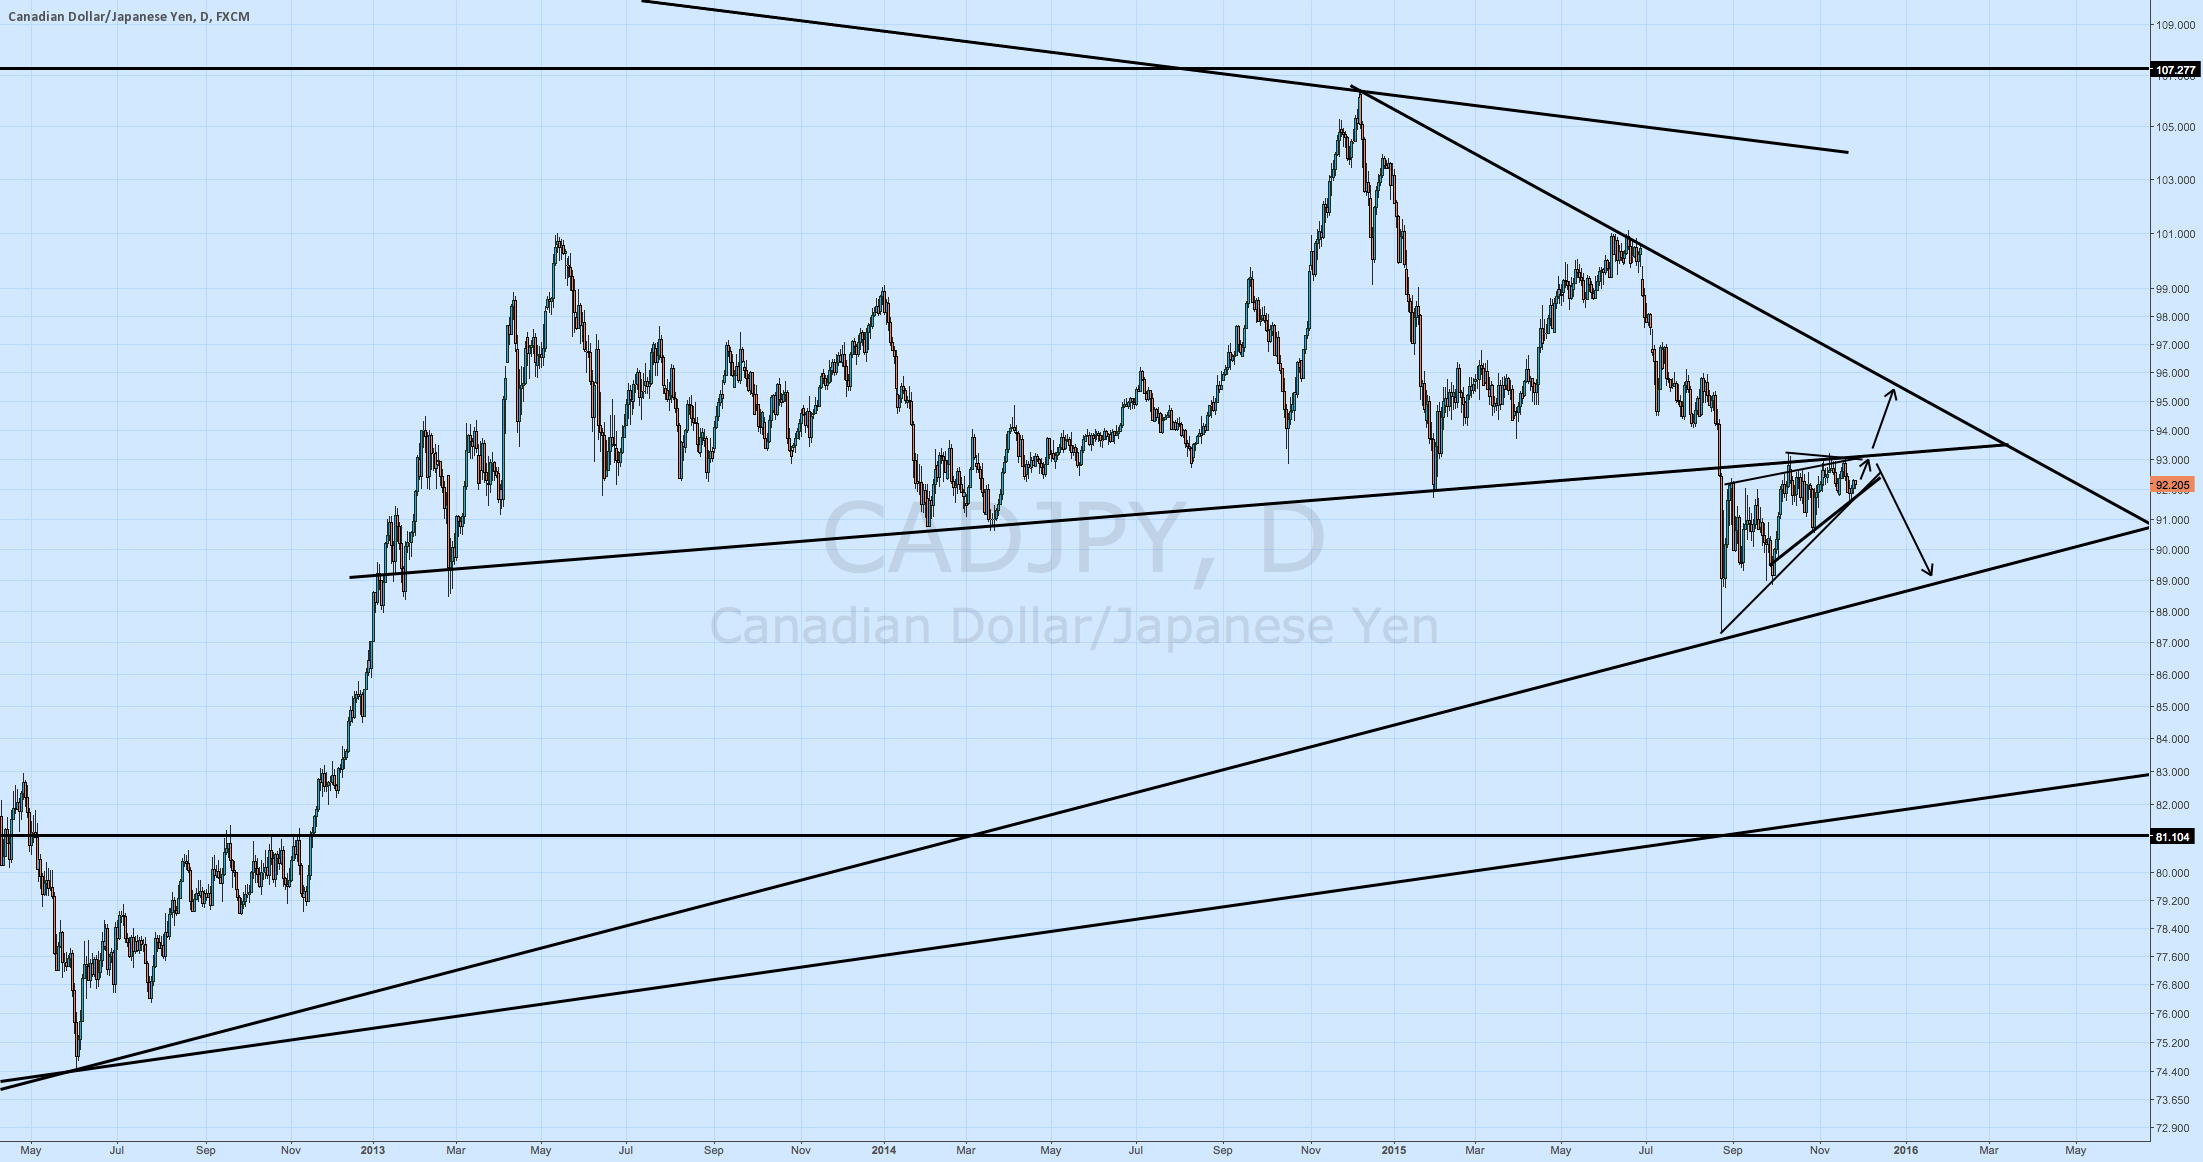 CADJPY is something to watch. Prepare now for a move in December